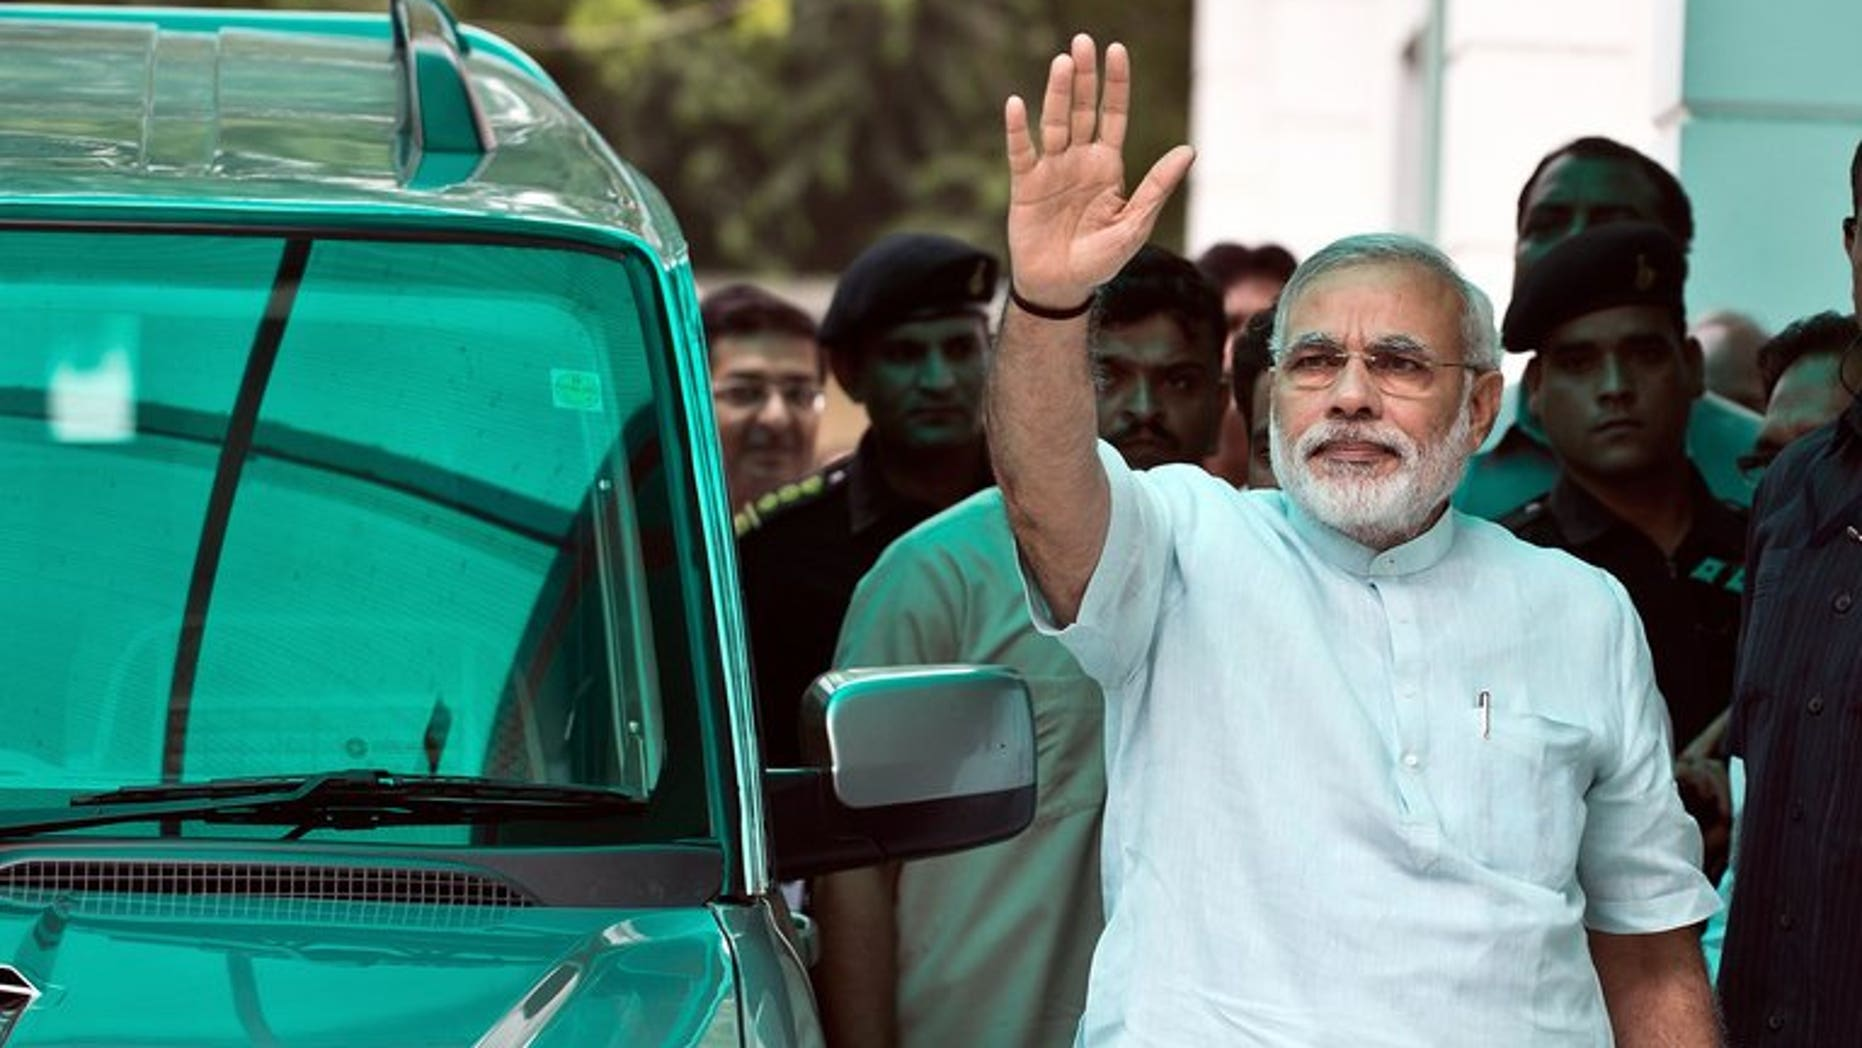 Bharatiya Janata Party (BJP) leader Narendra Modi waves on his arrival at party headquarters in New Delhi, on July 8, 2013. Modi -- seen as the key opposition challenger in 2014 elections -- has said he meant no offence when he compared victims of anti-Muslim violence to puppies run over by a car.